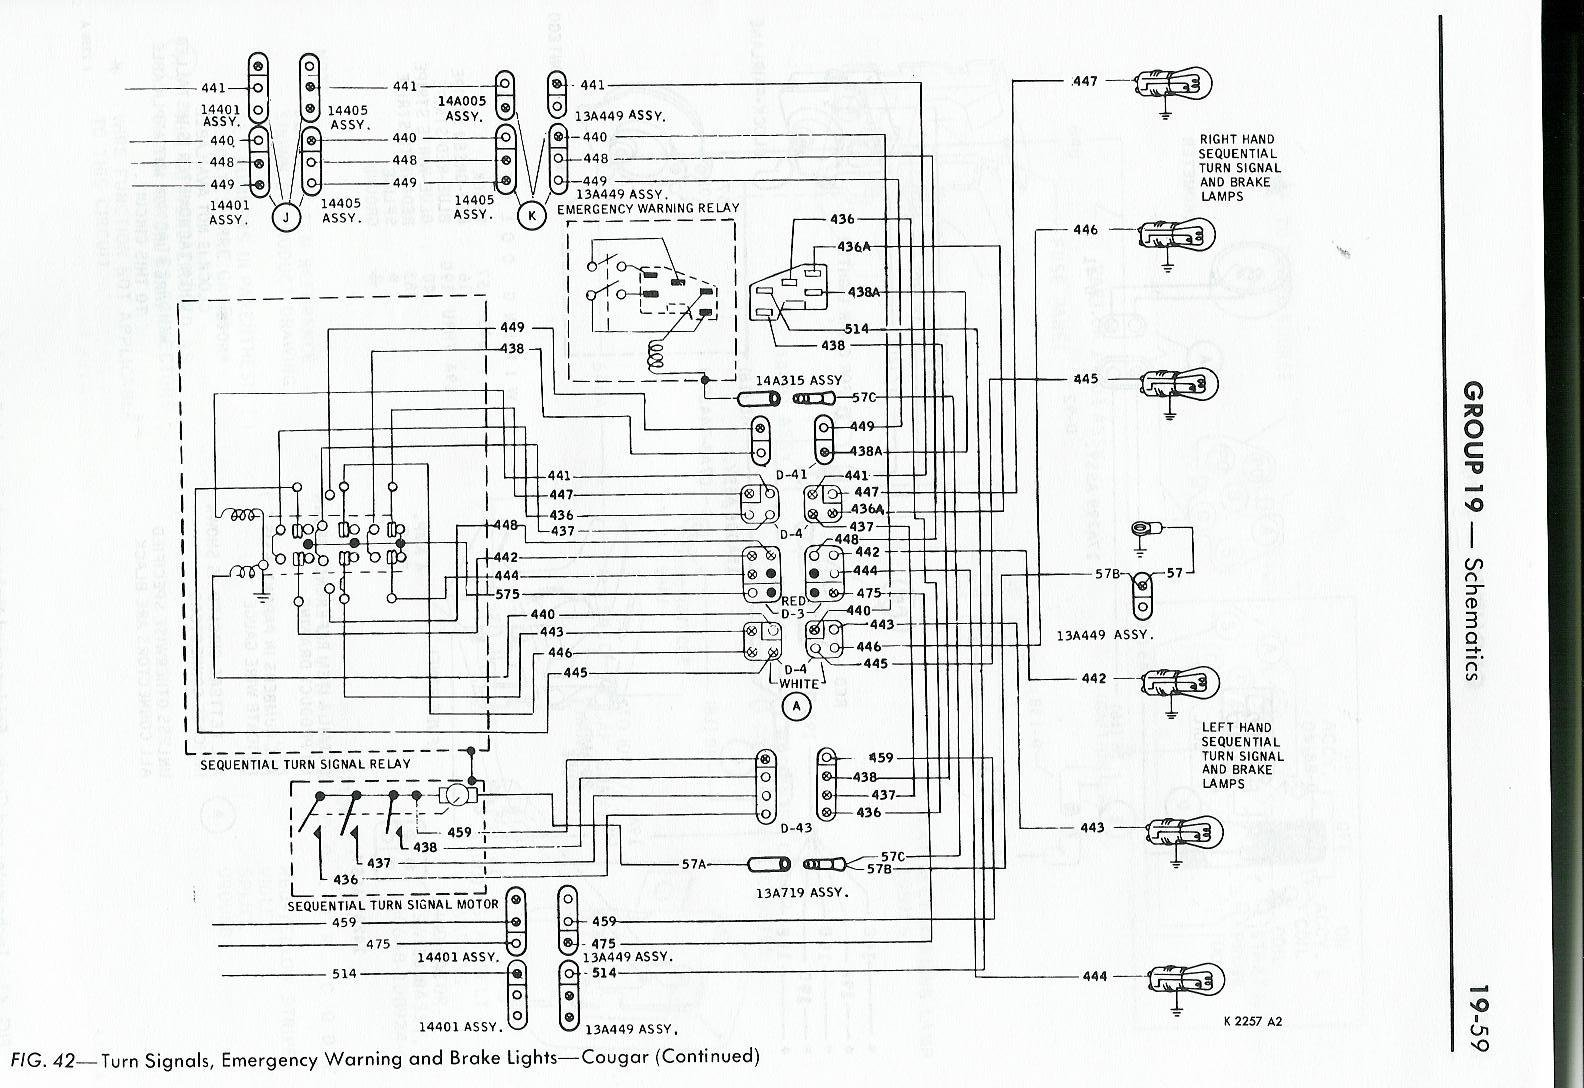 1967 cougar turn signal wiring diagram  1967  free engine